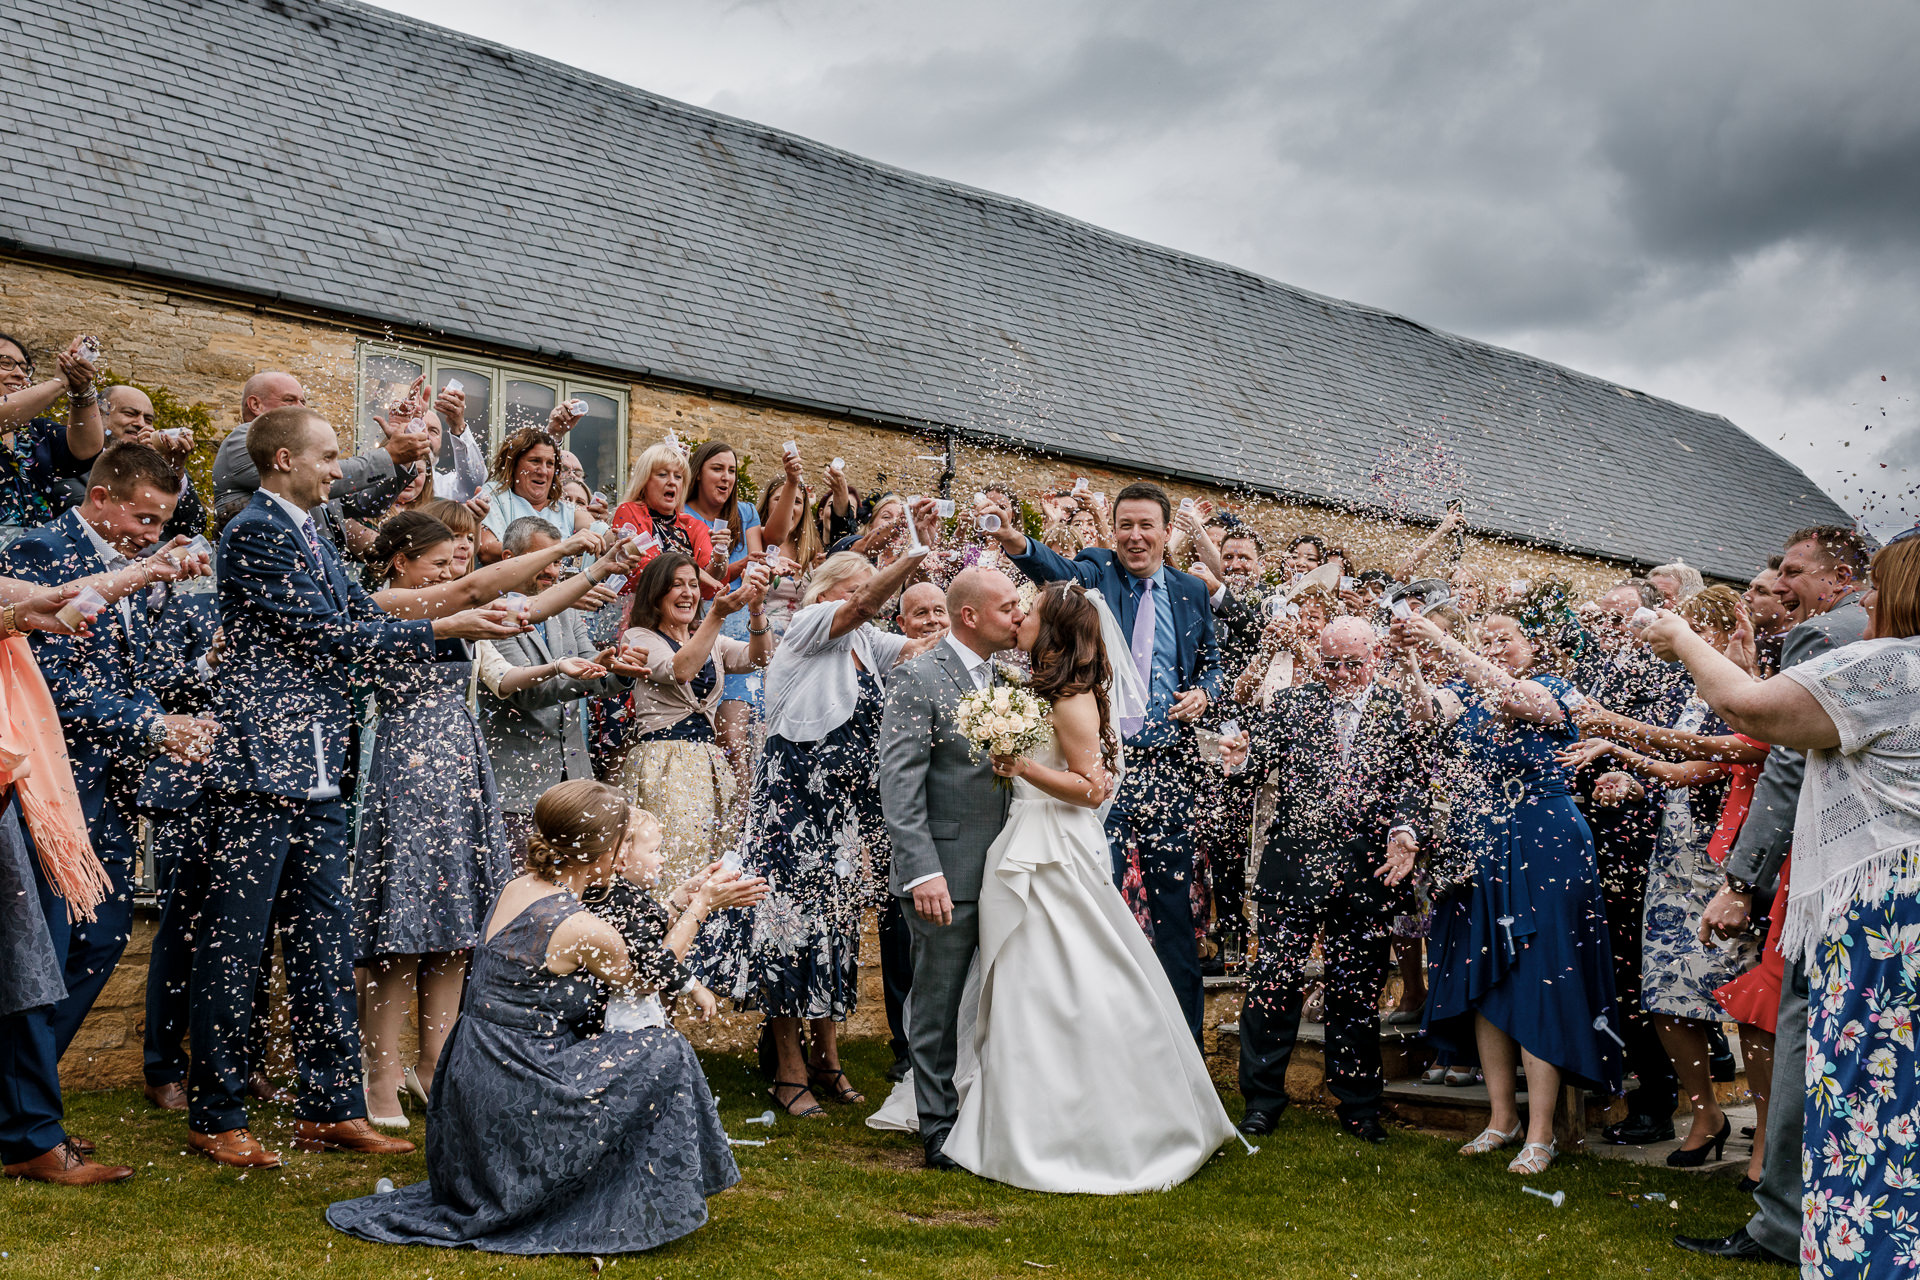 Wedding Photographer The Great Barn Aynho Oxfordshire Potters Instinct Photography